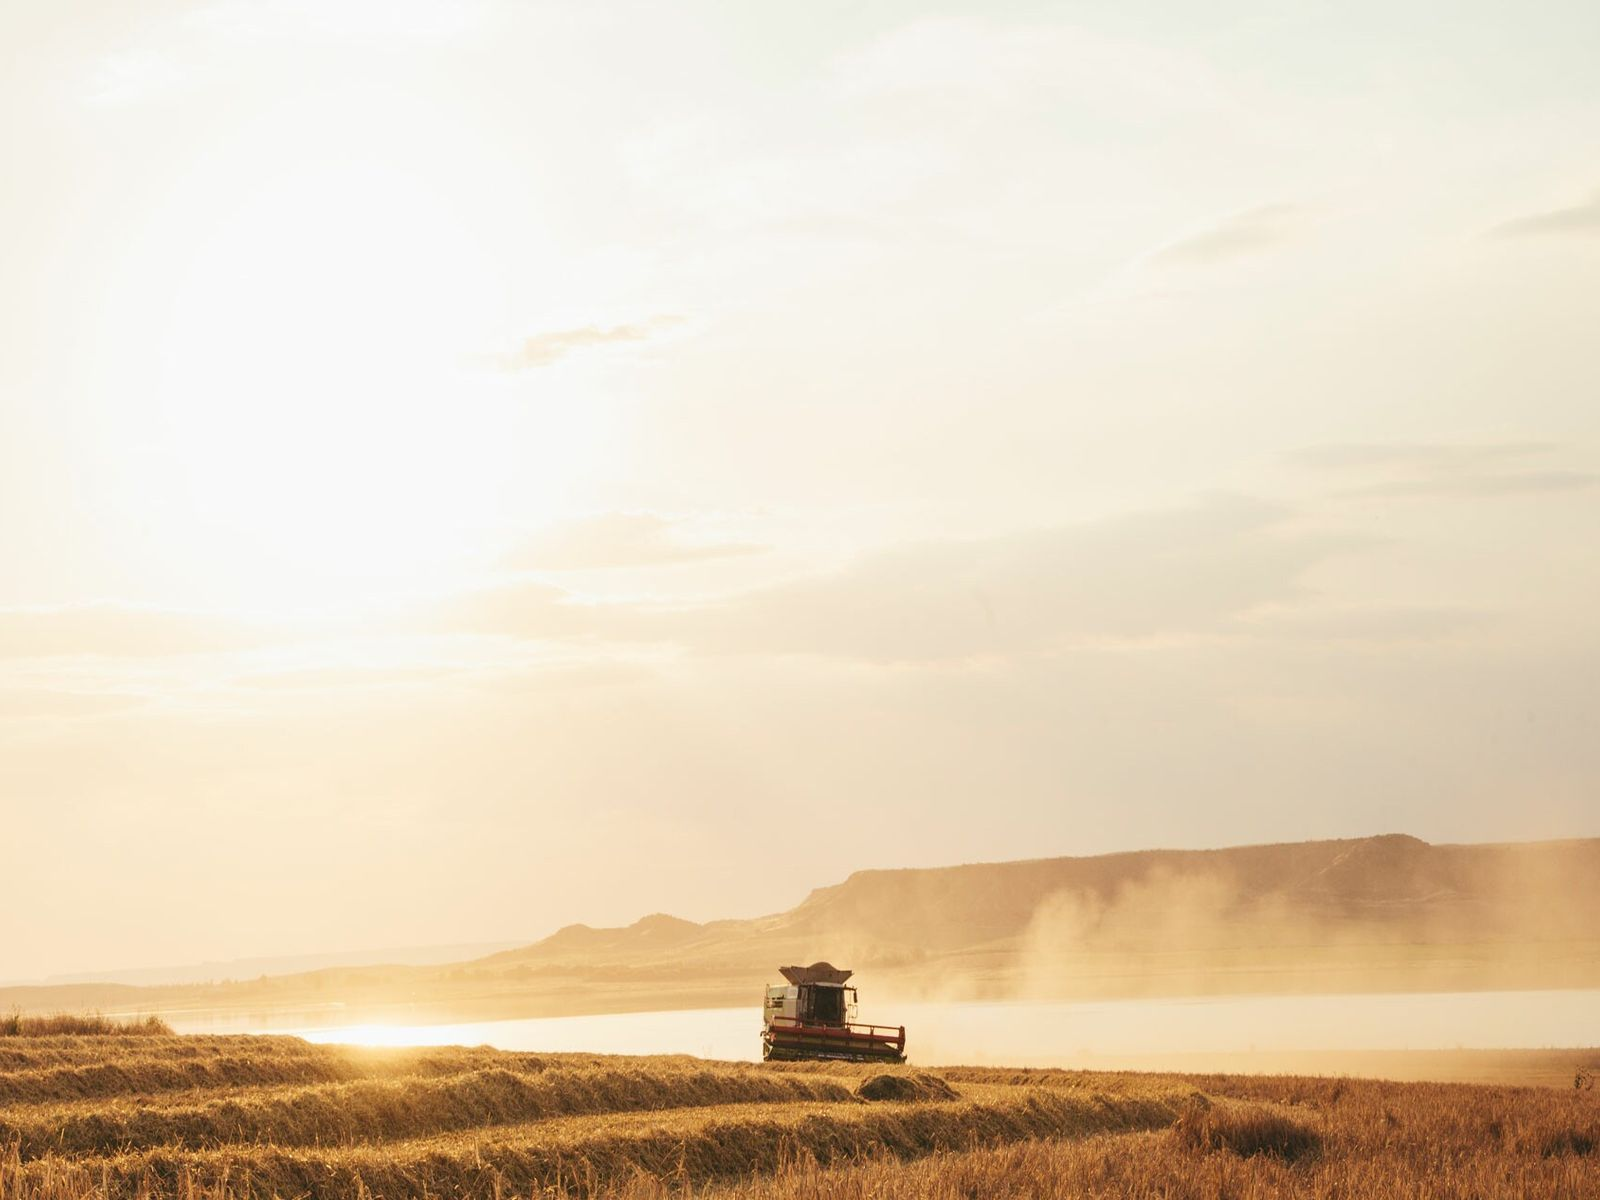 The finest barley is an ingredient that plays a starring role in Estrella's distinctive fresh flavour.